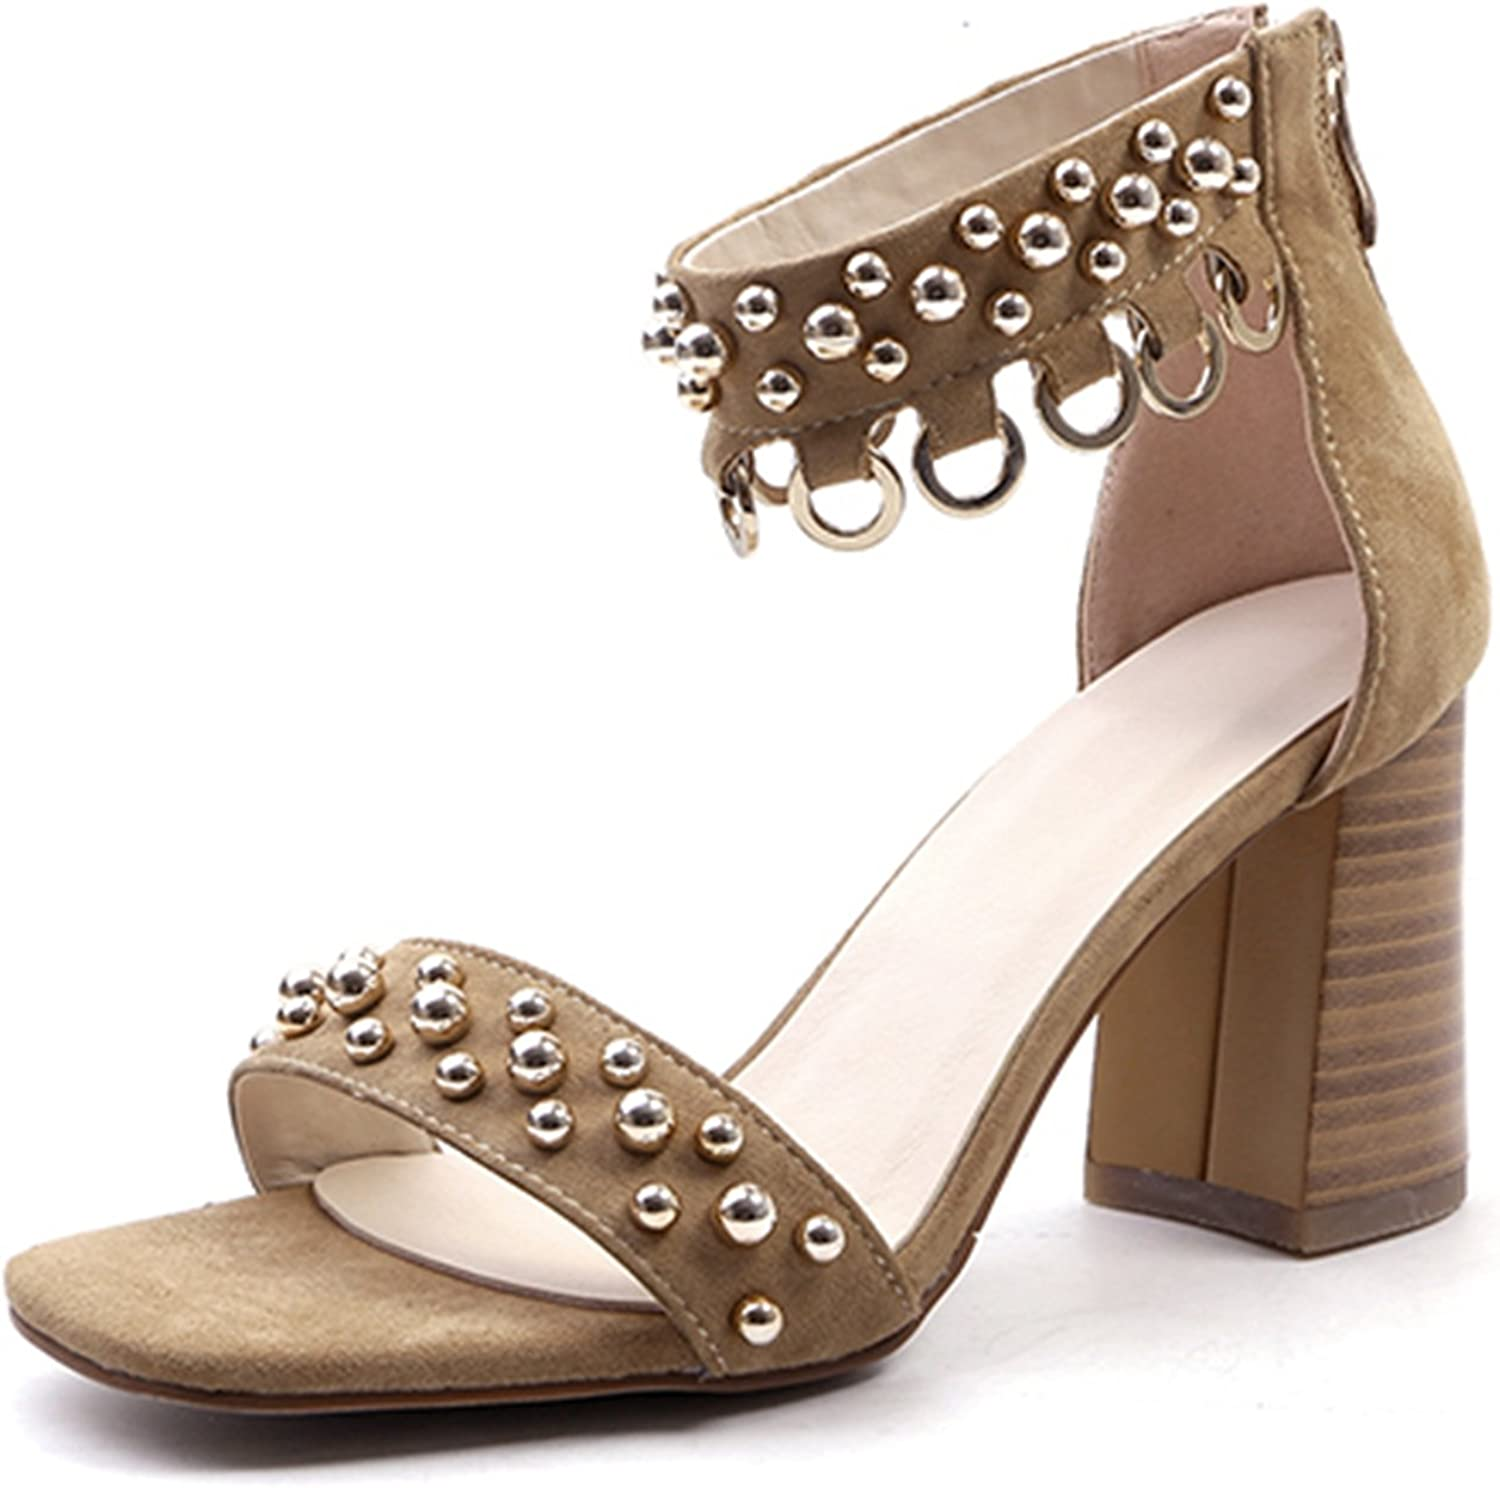 DoraTasia Women's Summer Open Toe Covered Chunky Block Heel shoes Ankle Strap Zipper Sandals